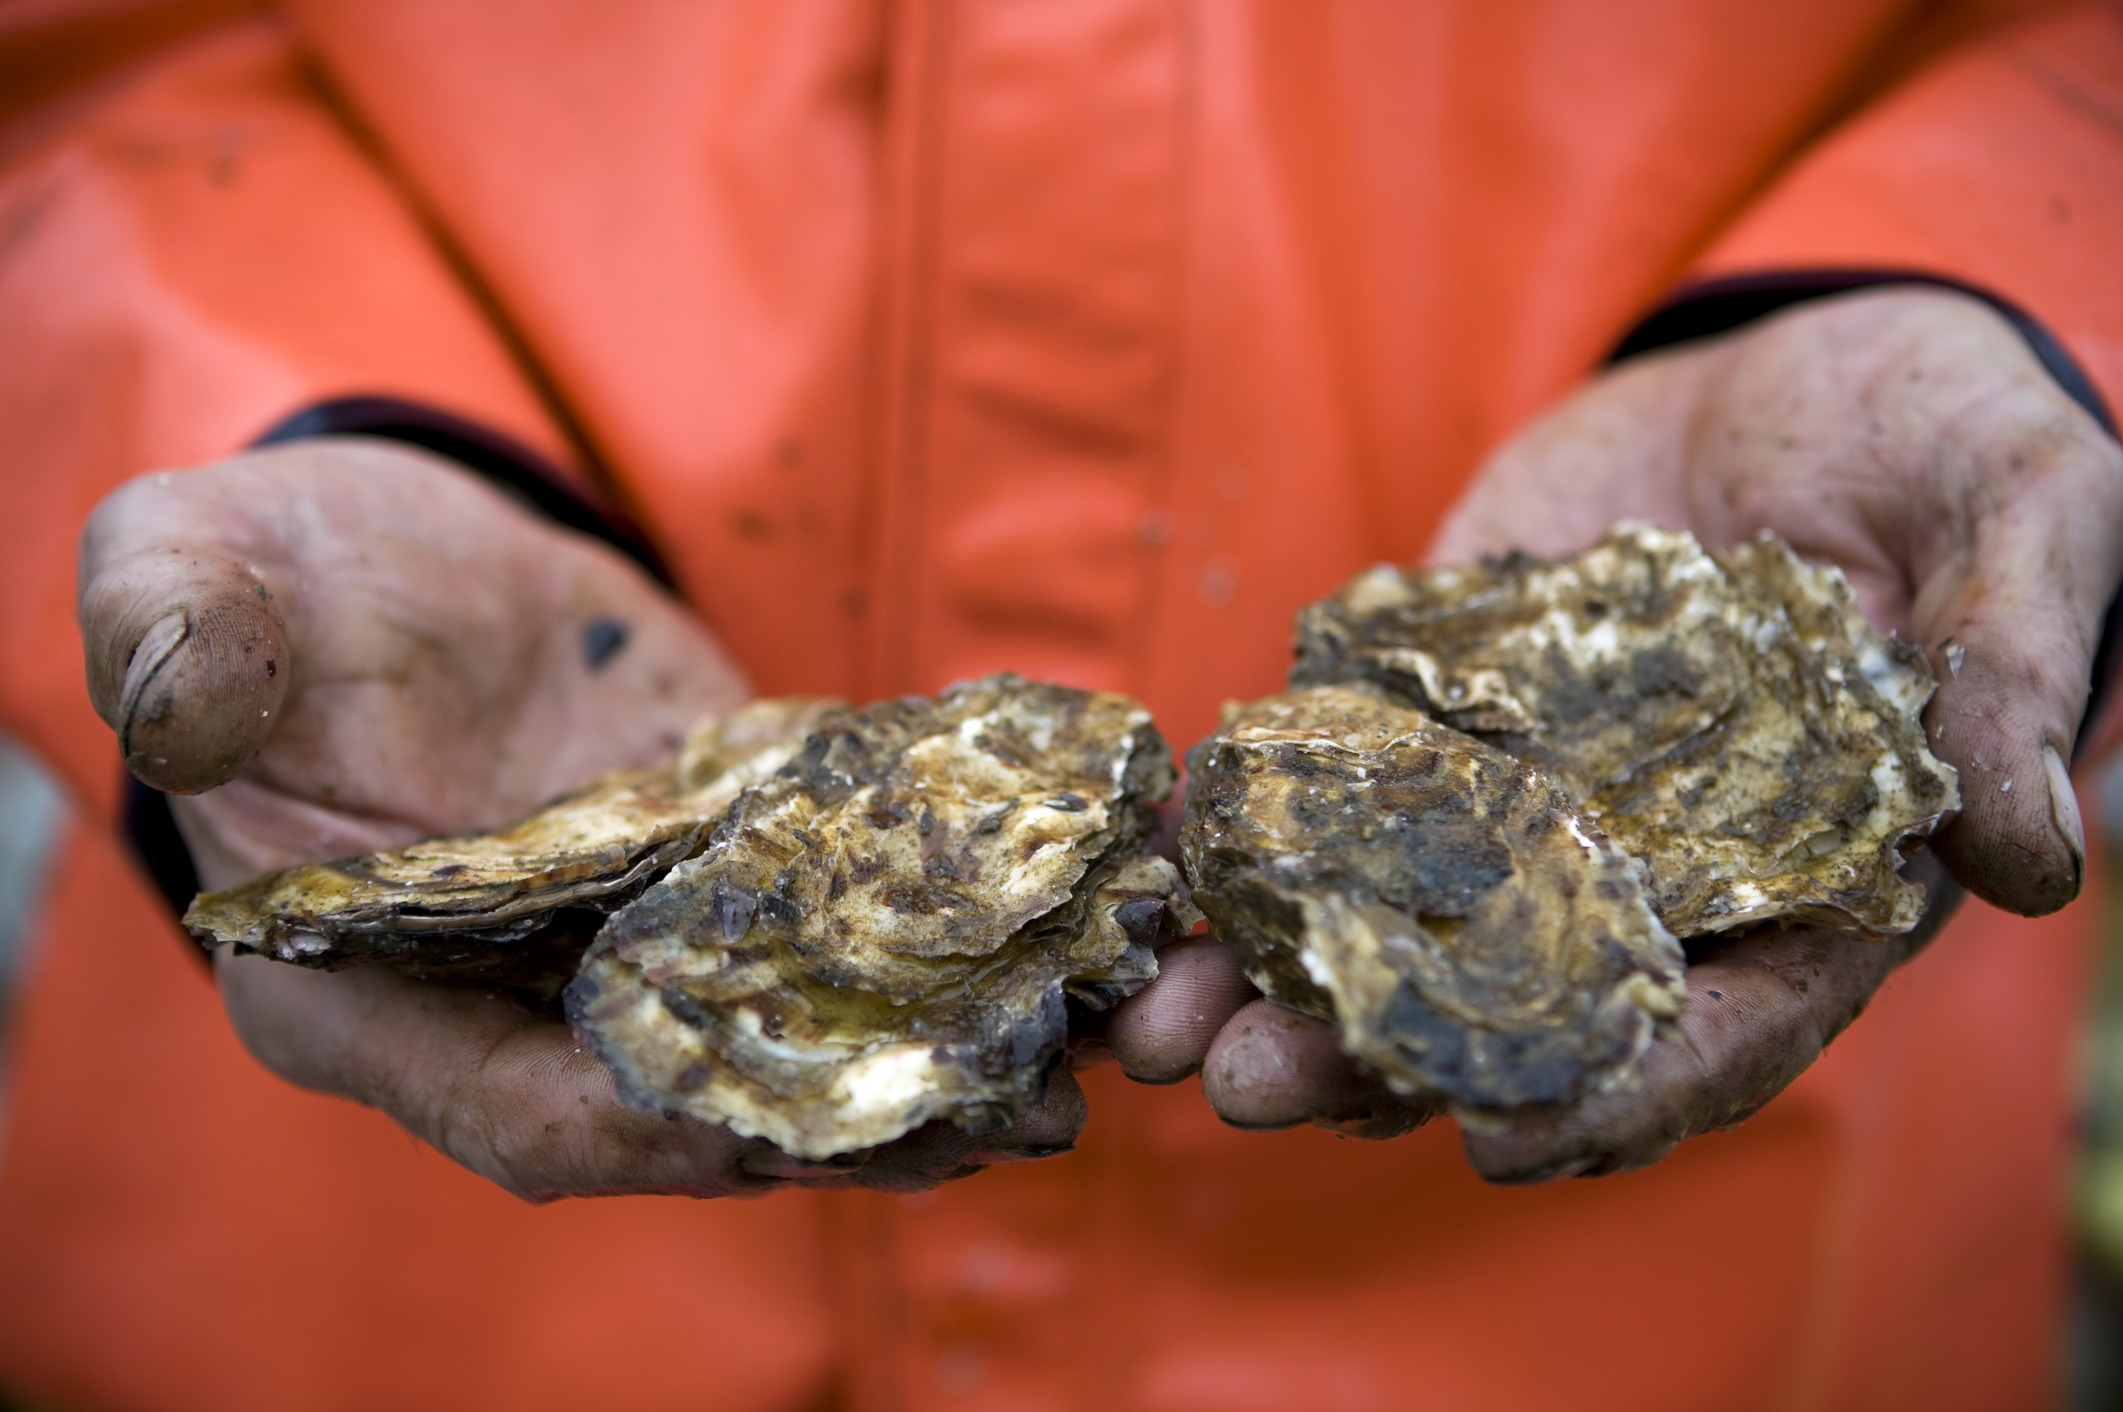 Fisherman Holding Fresh Farmed Pacific Oysters In Prince William Sound, Alaska. Oysters Can Grow Very Well In Cold Water If There Is Abundant, High-quality Plankton. Many Estuaries In Alaska Produce So Much High-quality Plankton During Certain Times Of The Year That Alaskan Shellfish Can Match Growth Achieved By Shellfish Raised In Warmer Waters Of The Pacific Northwest.